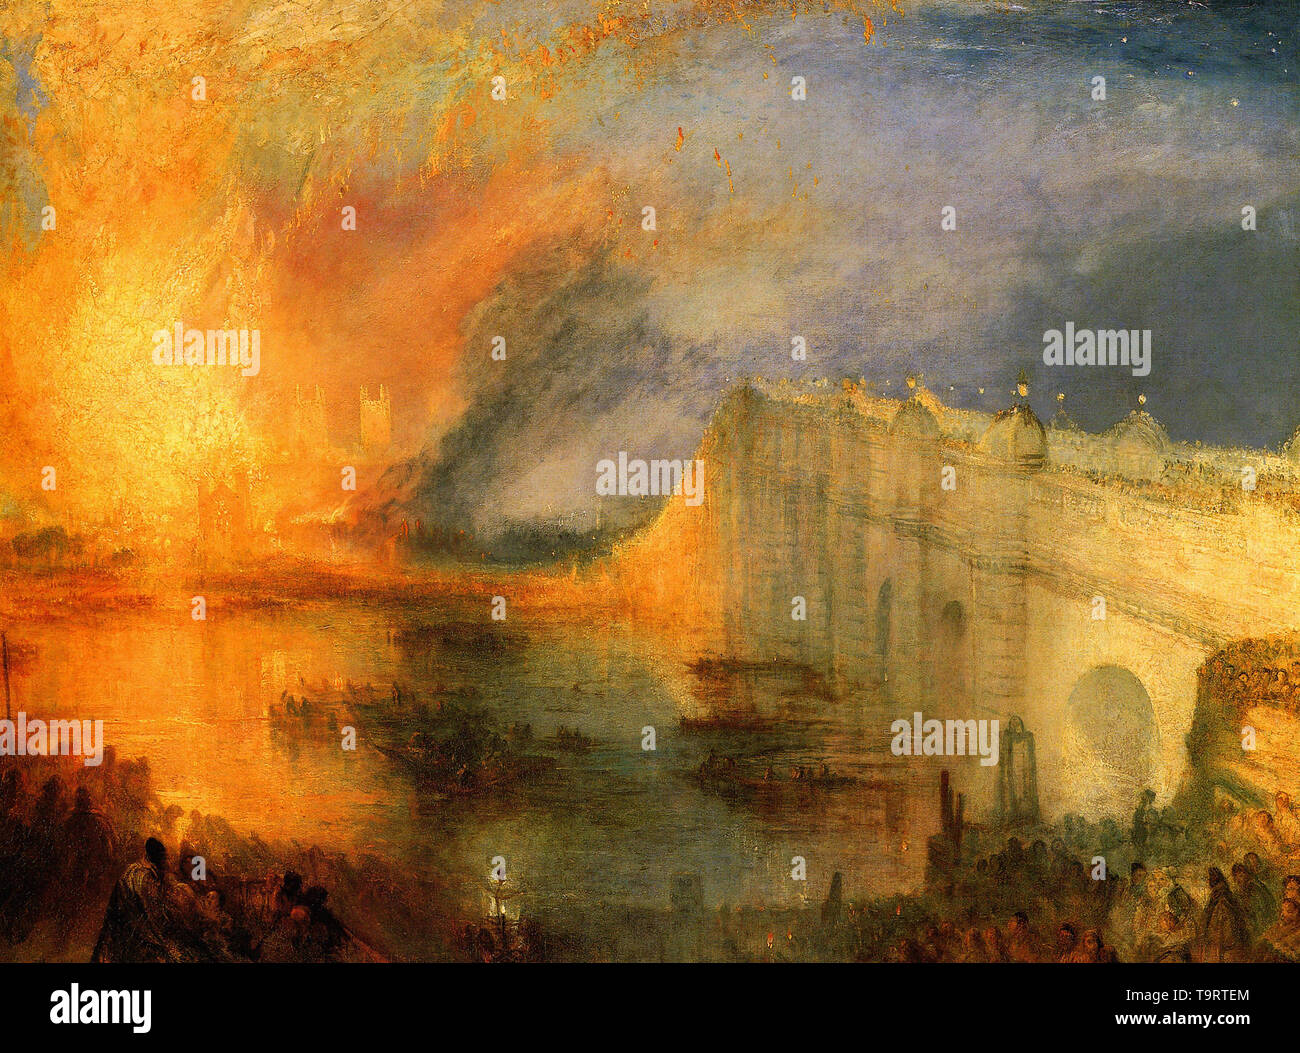 Joseph Mallord William Turner - burning houses parliament 1834 - Stock Image